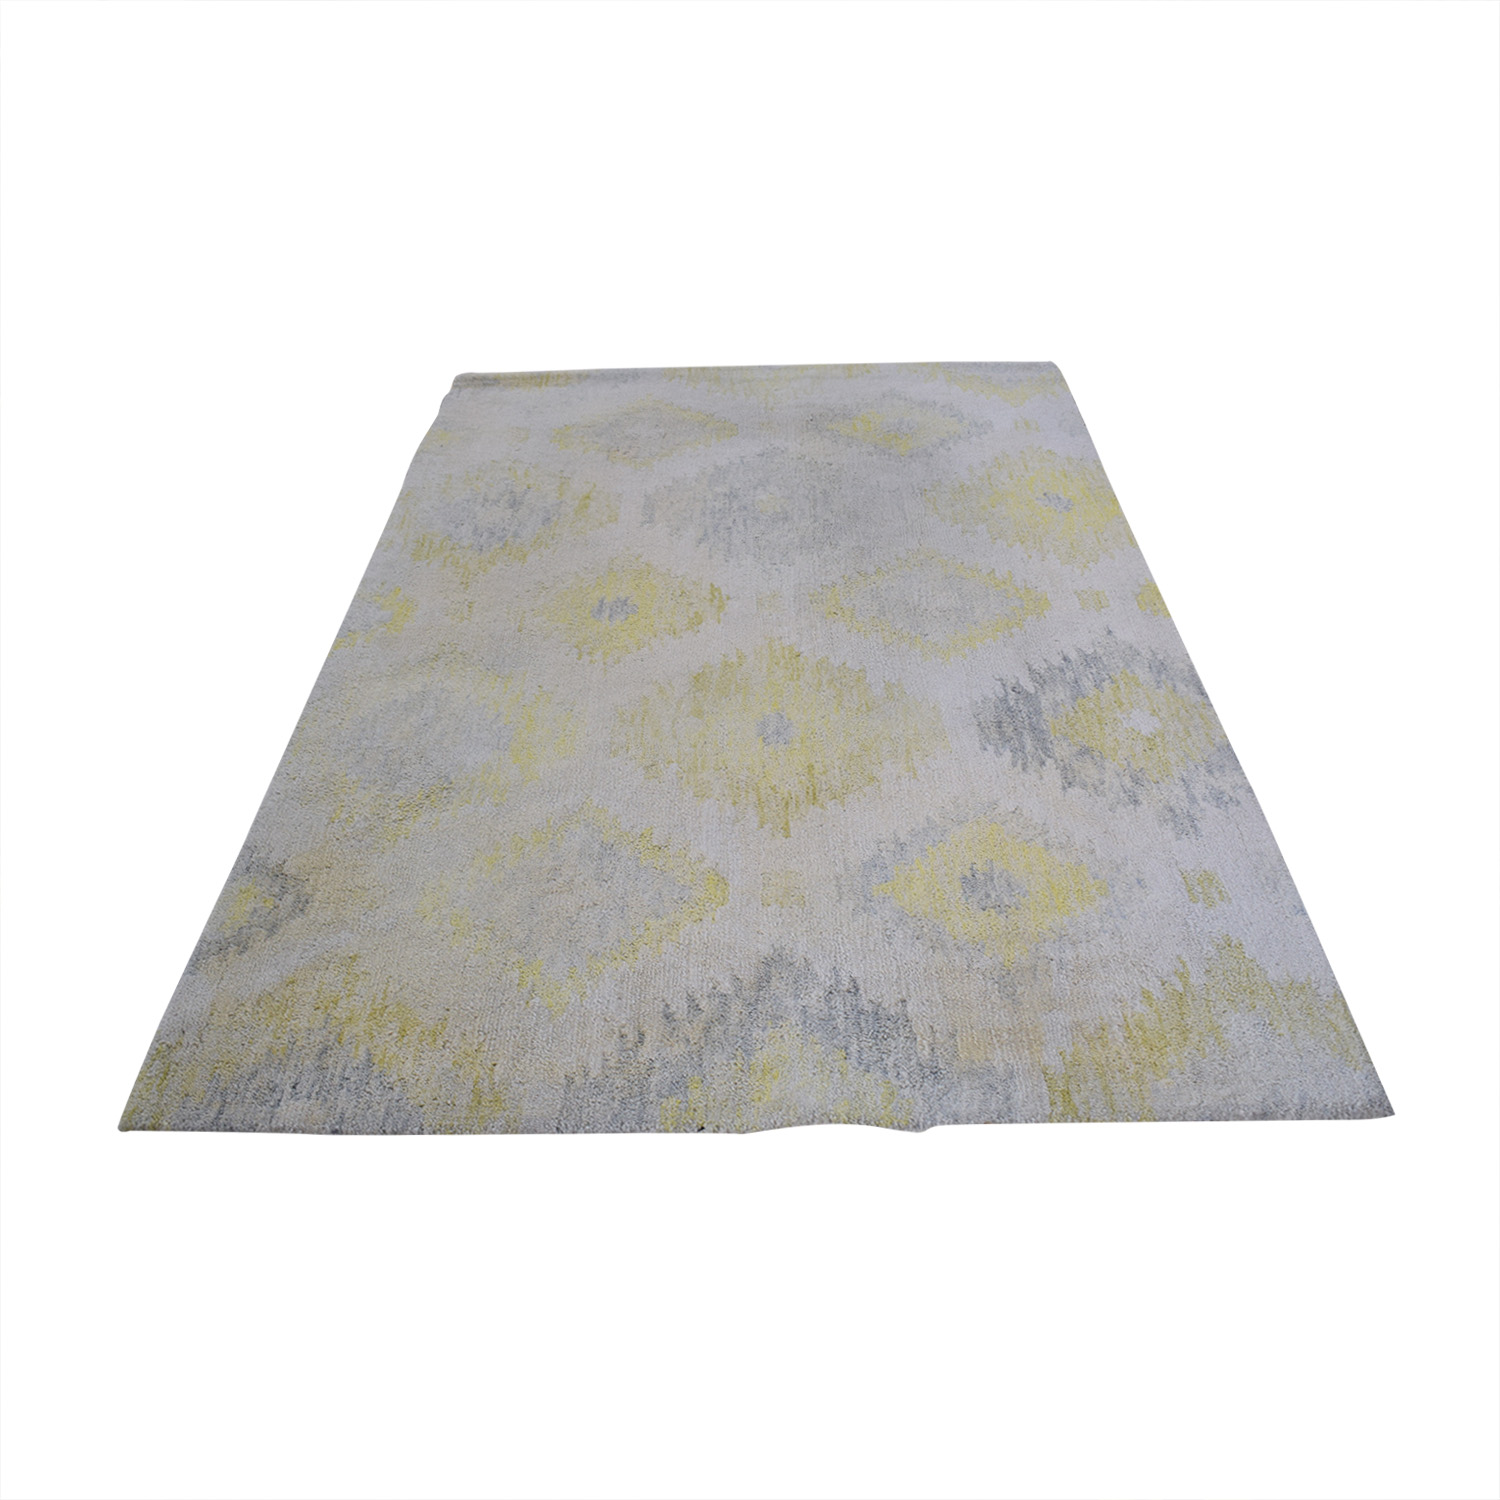 West Elm Blur Ikat Rug / Decor